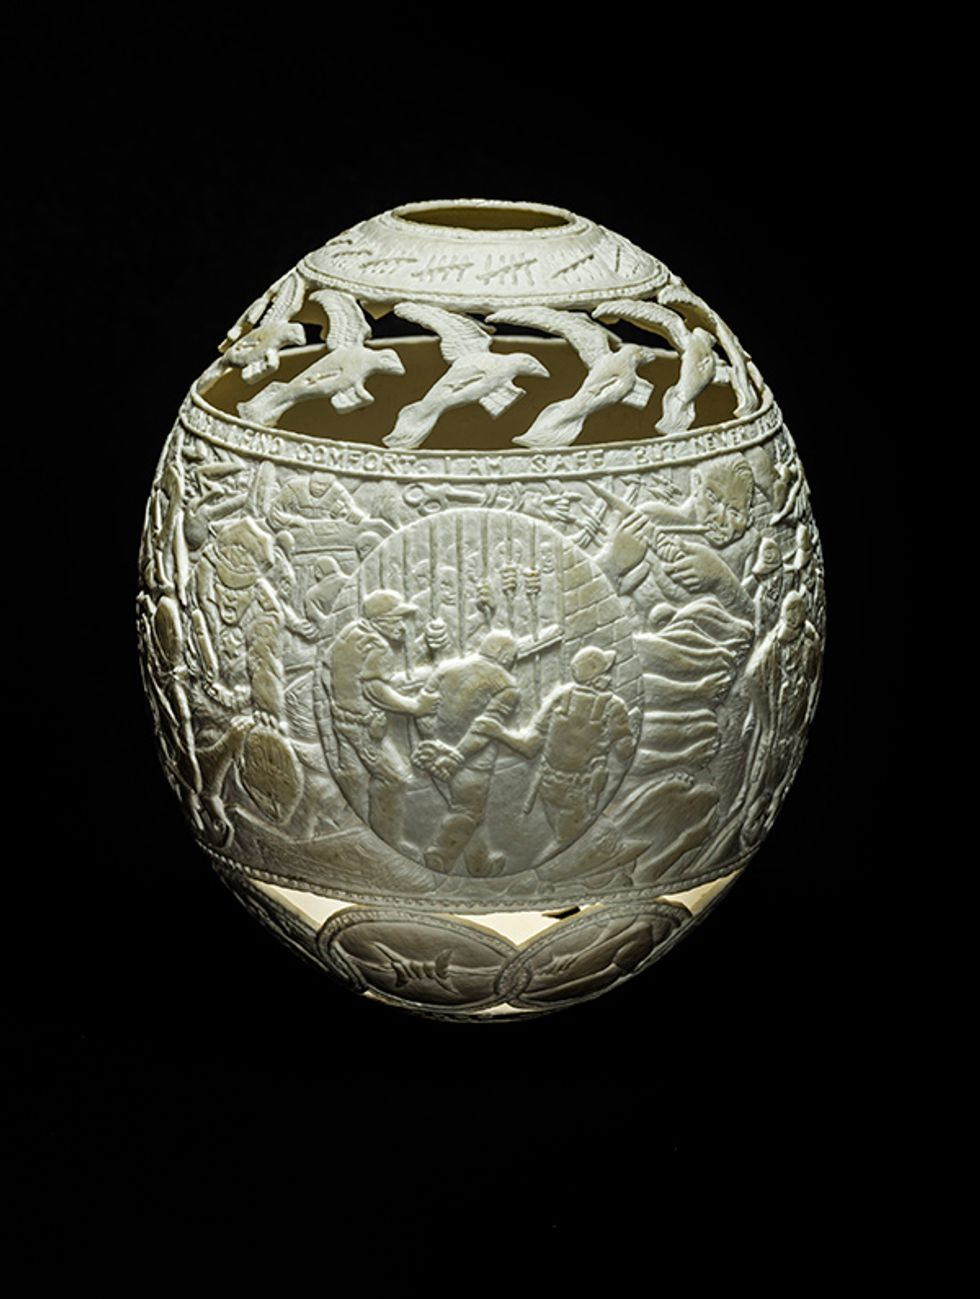 Former Prisoner Depicts Life Behind Bars With Astonishing Eggshell Carvings